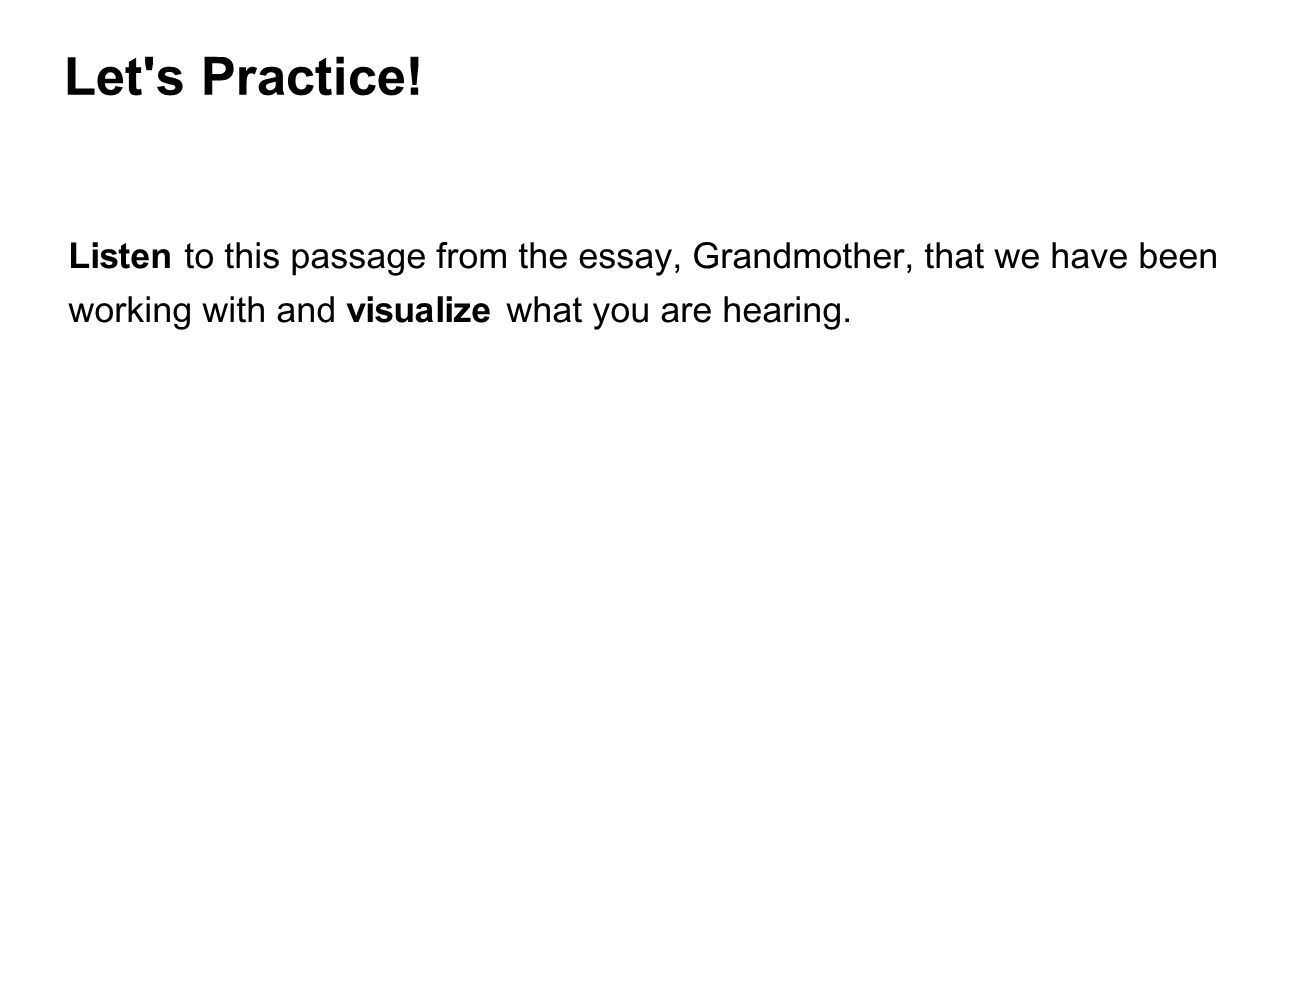 Let's Practice! Listen to this passage from the essay, Grandmother, that we have been working with and visualize what you are hearing.